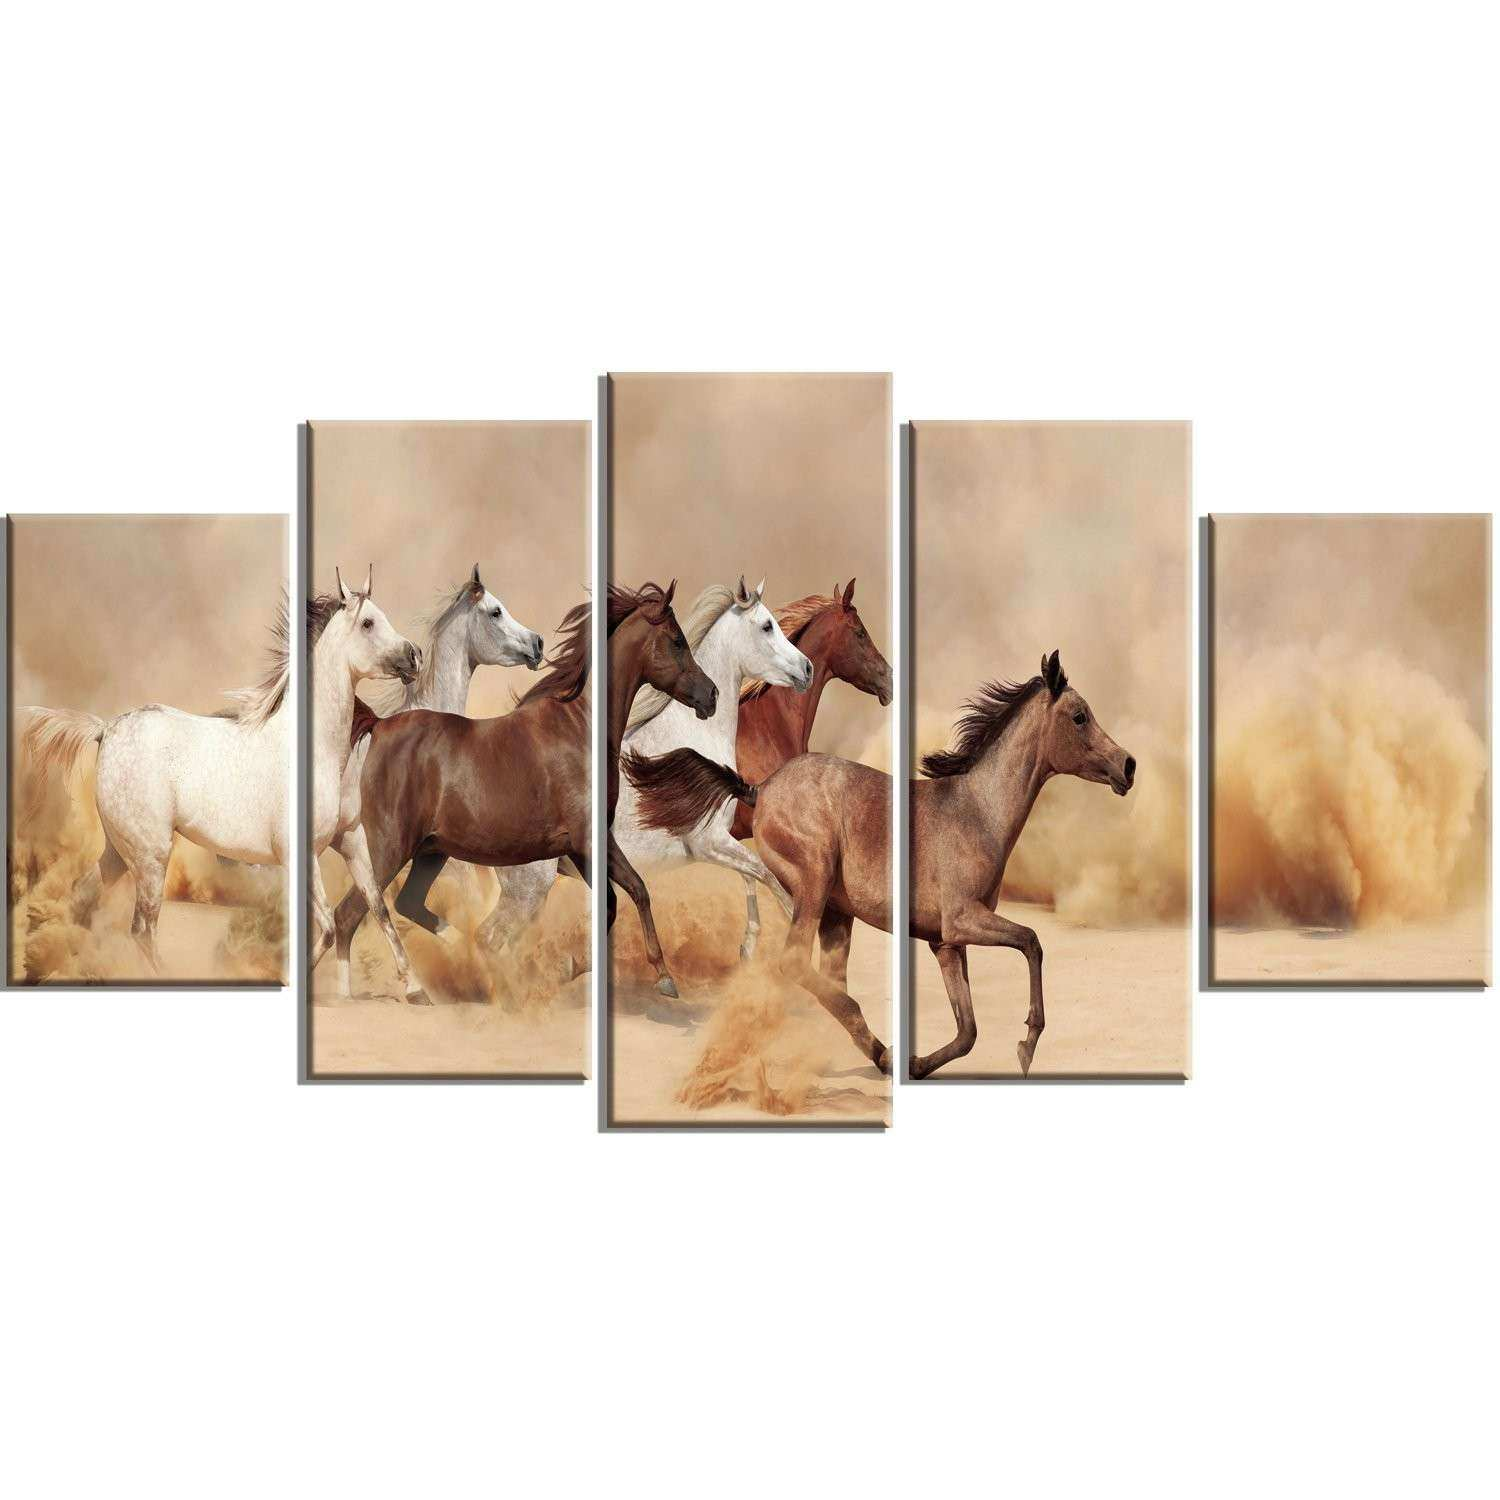 DesignArt Herd Gallops in Sand Storm 5 Piece Wall Art on